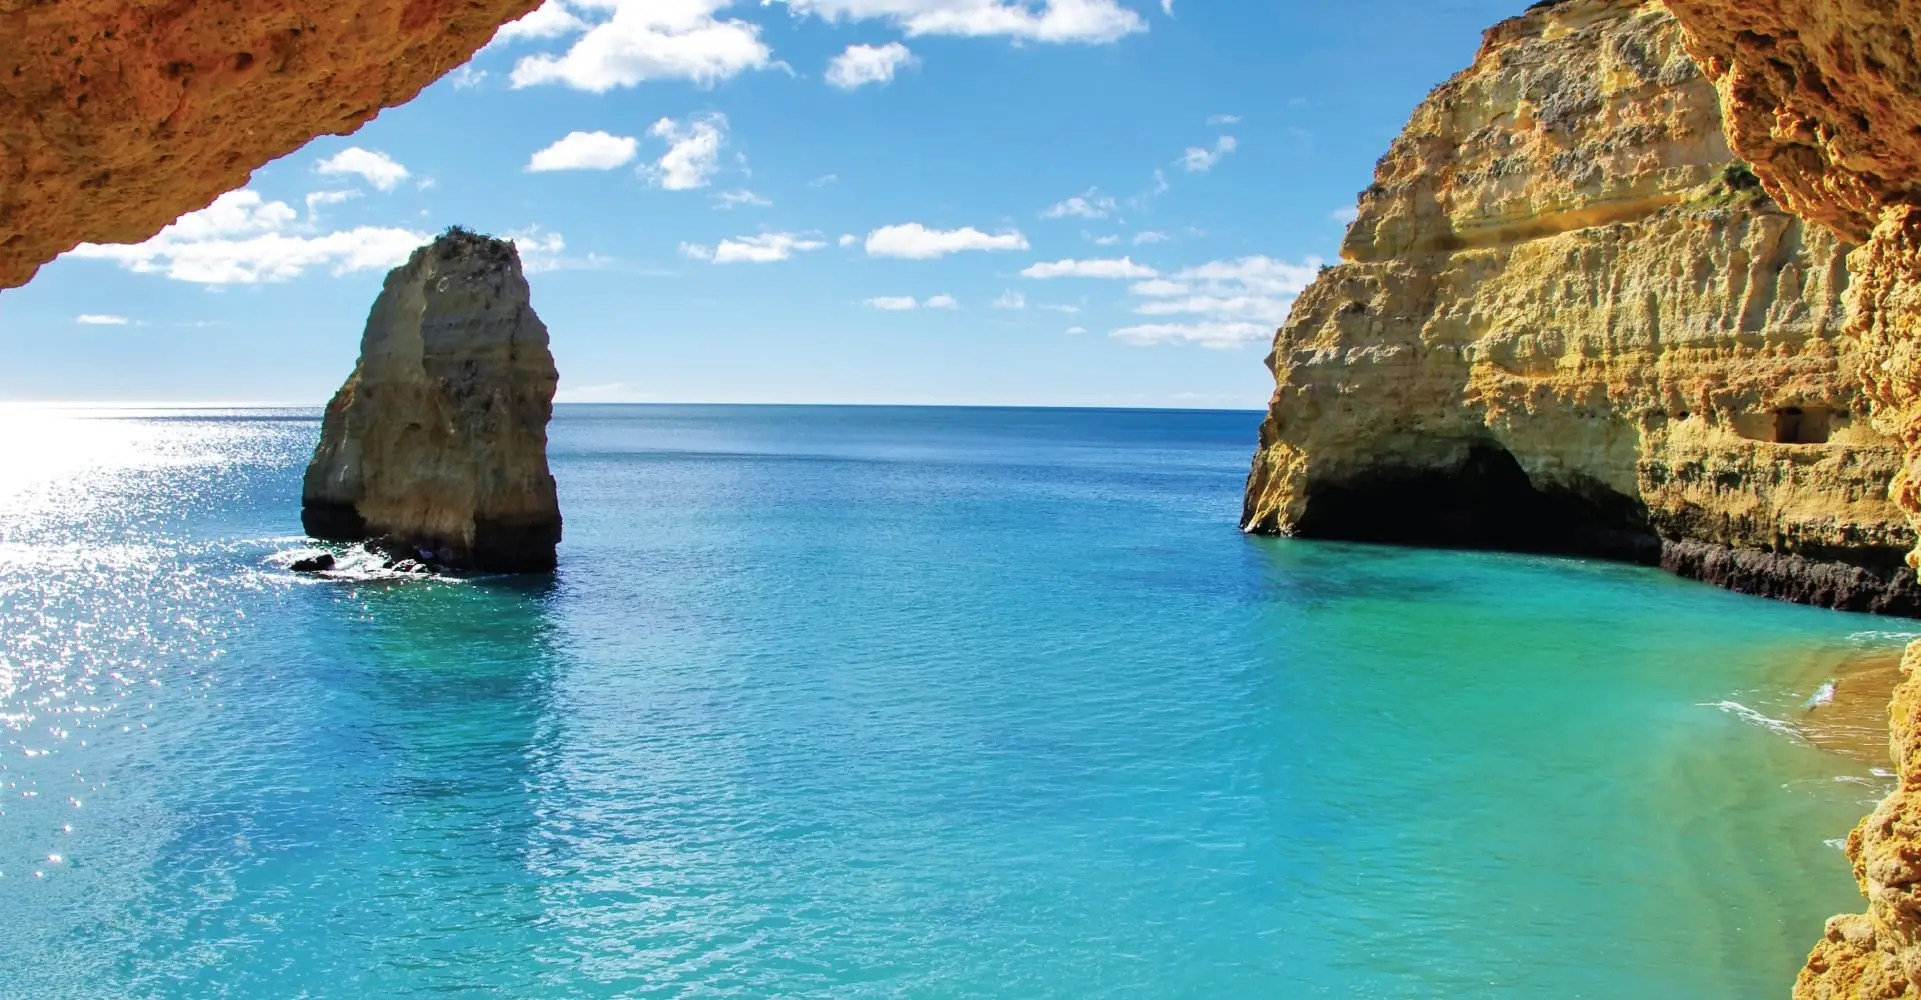 Hotel Tivoli Carvoeiro Algarve Booking Advance Purchase Offer Tivoli Carvoeiro Algarve Resort